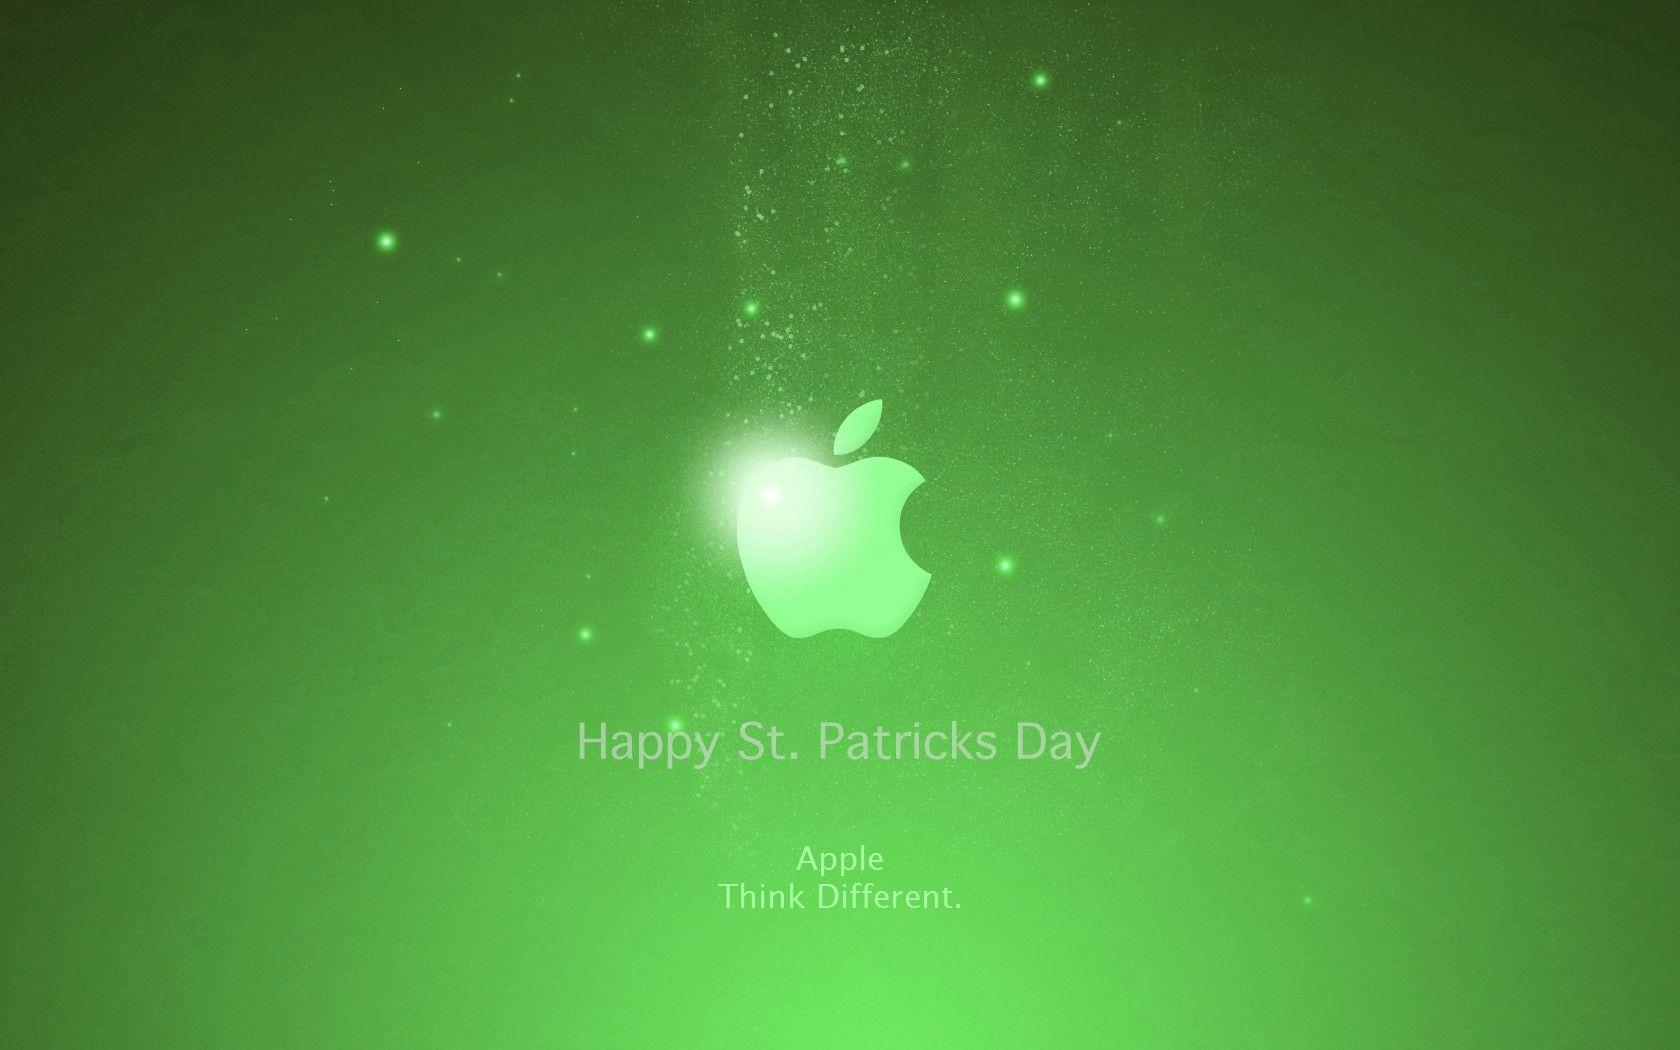 St. Patrick&Day Wallpapers